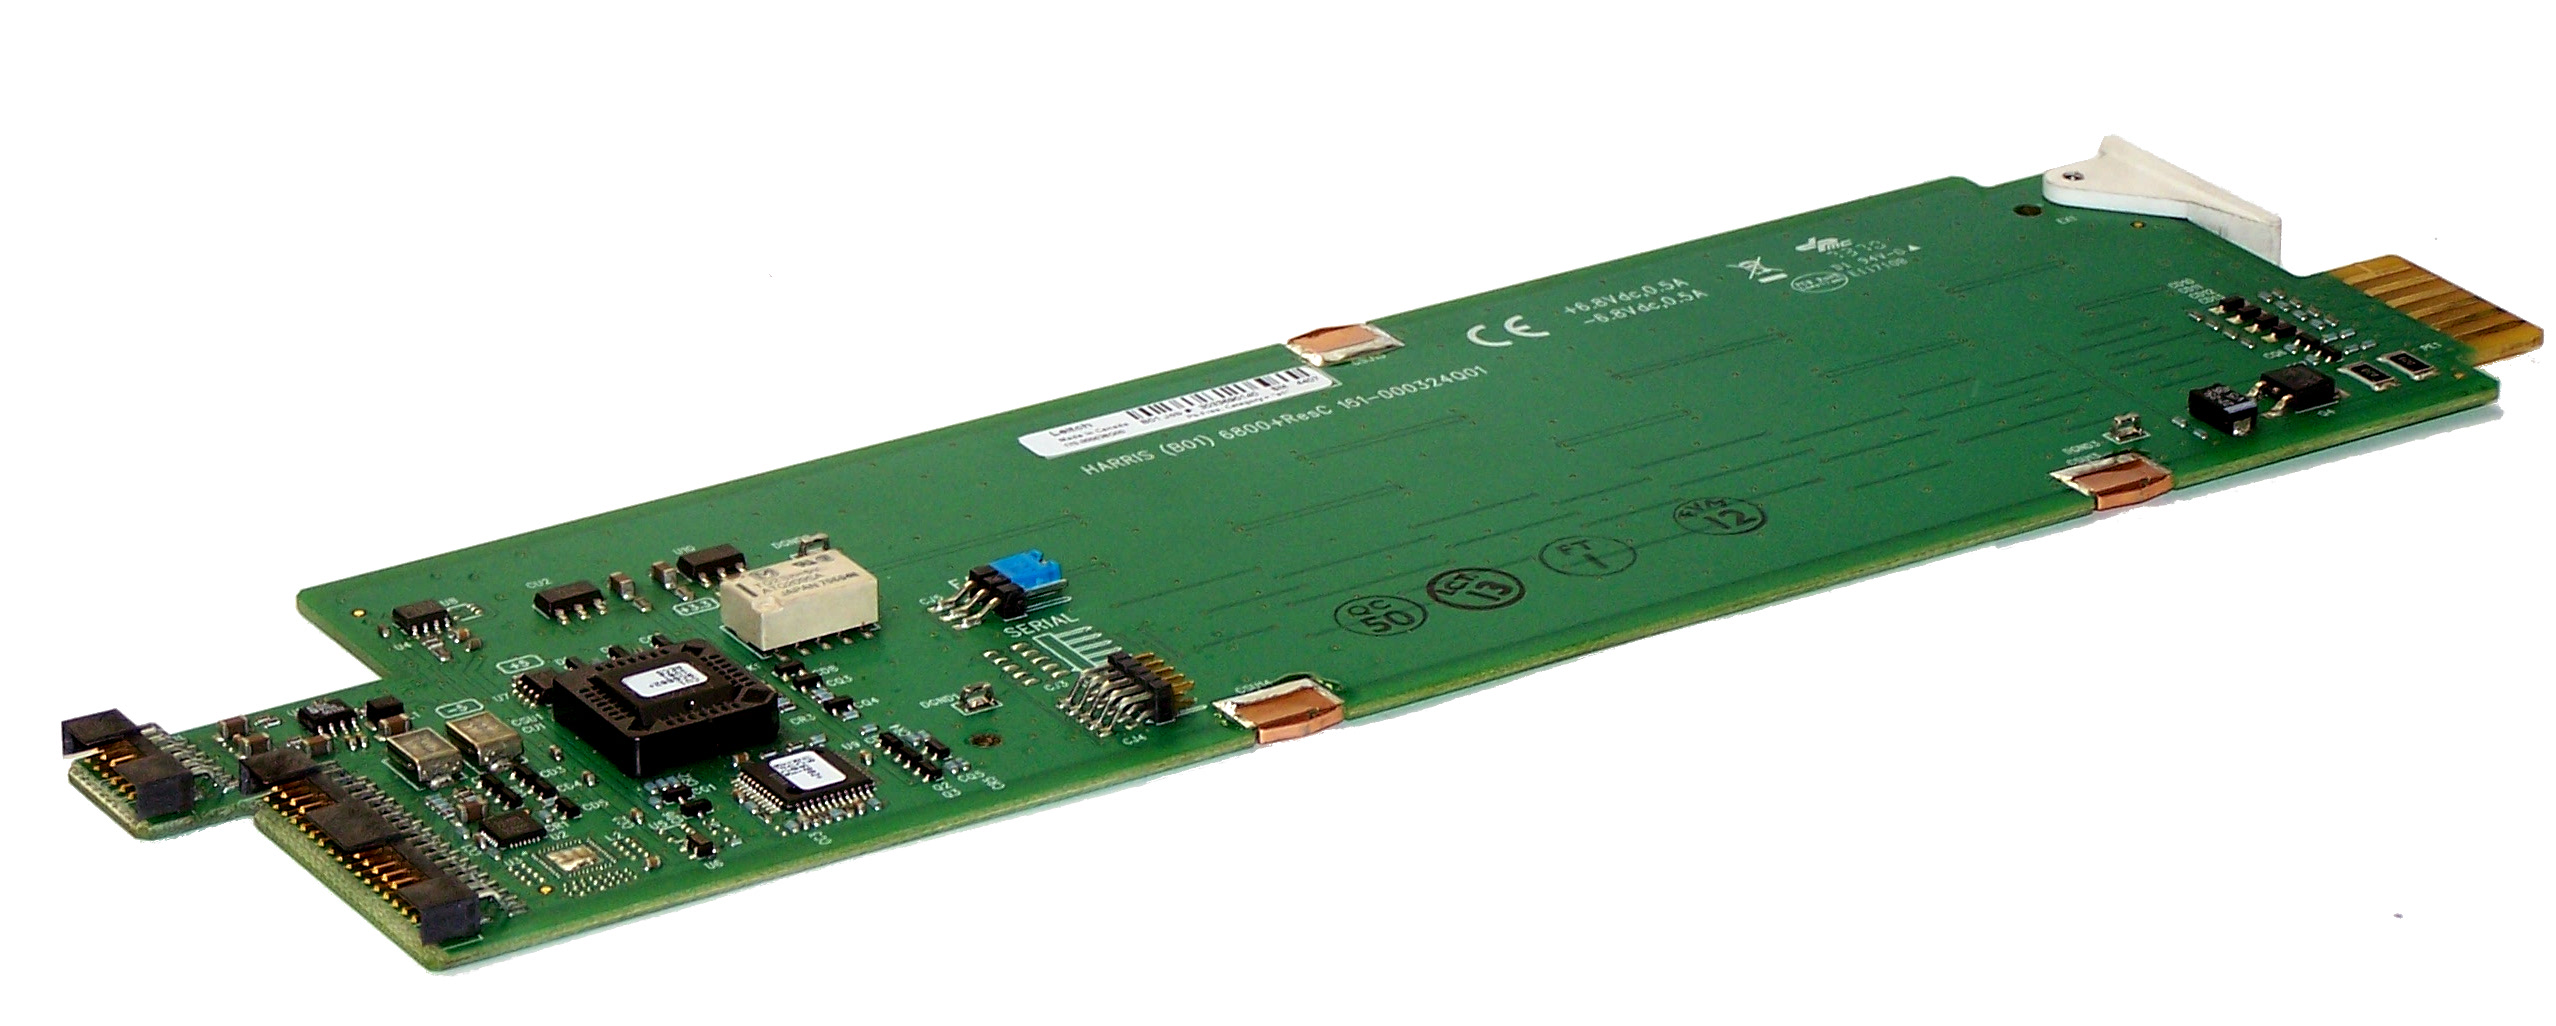 Details about Leitch 6800+ RESC Interface Card